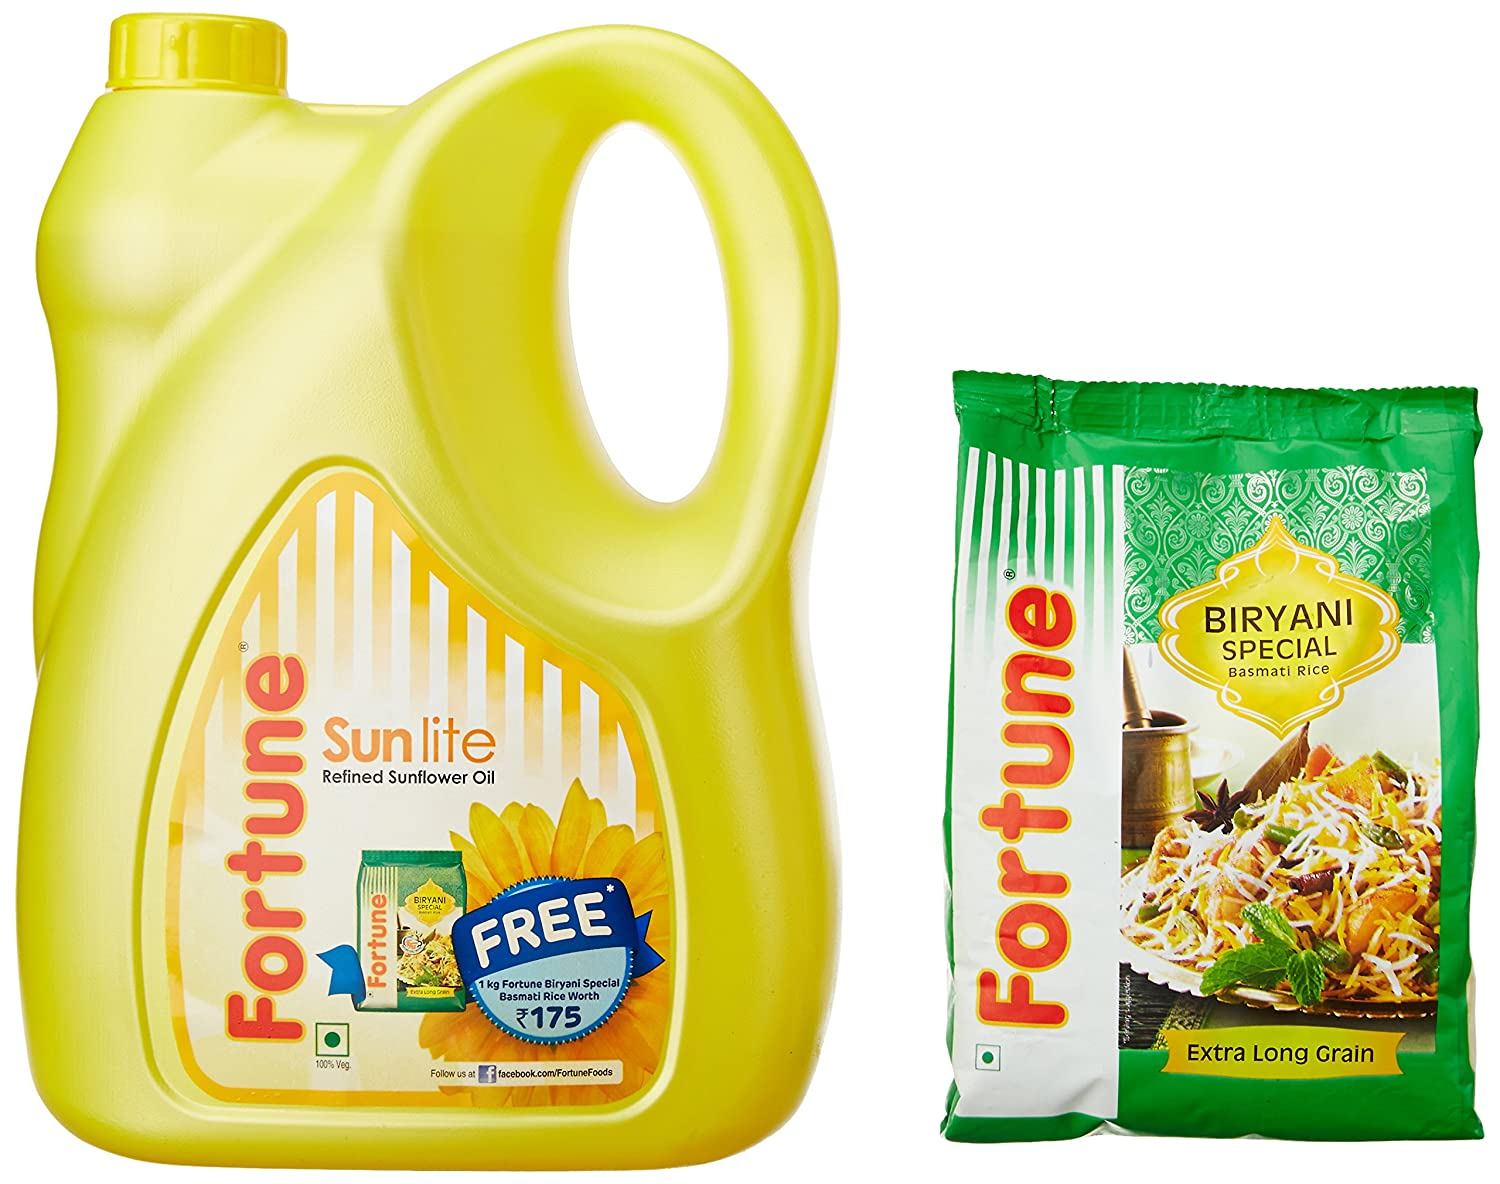 Free 1kg Fortune  Basmati Rice with Fortune Sunlite Refined Sunflower Oil